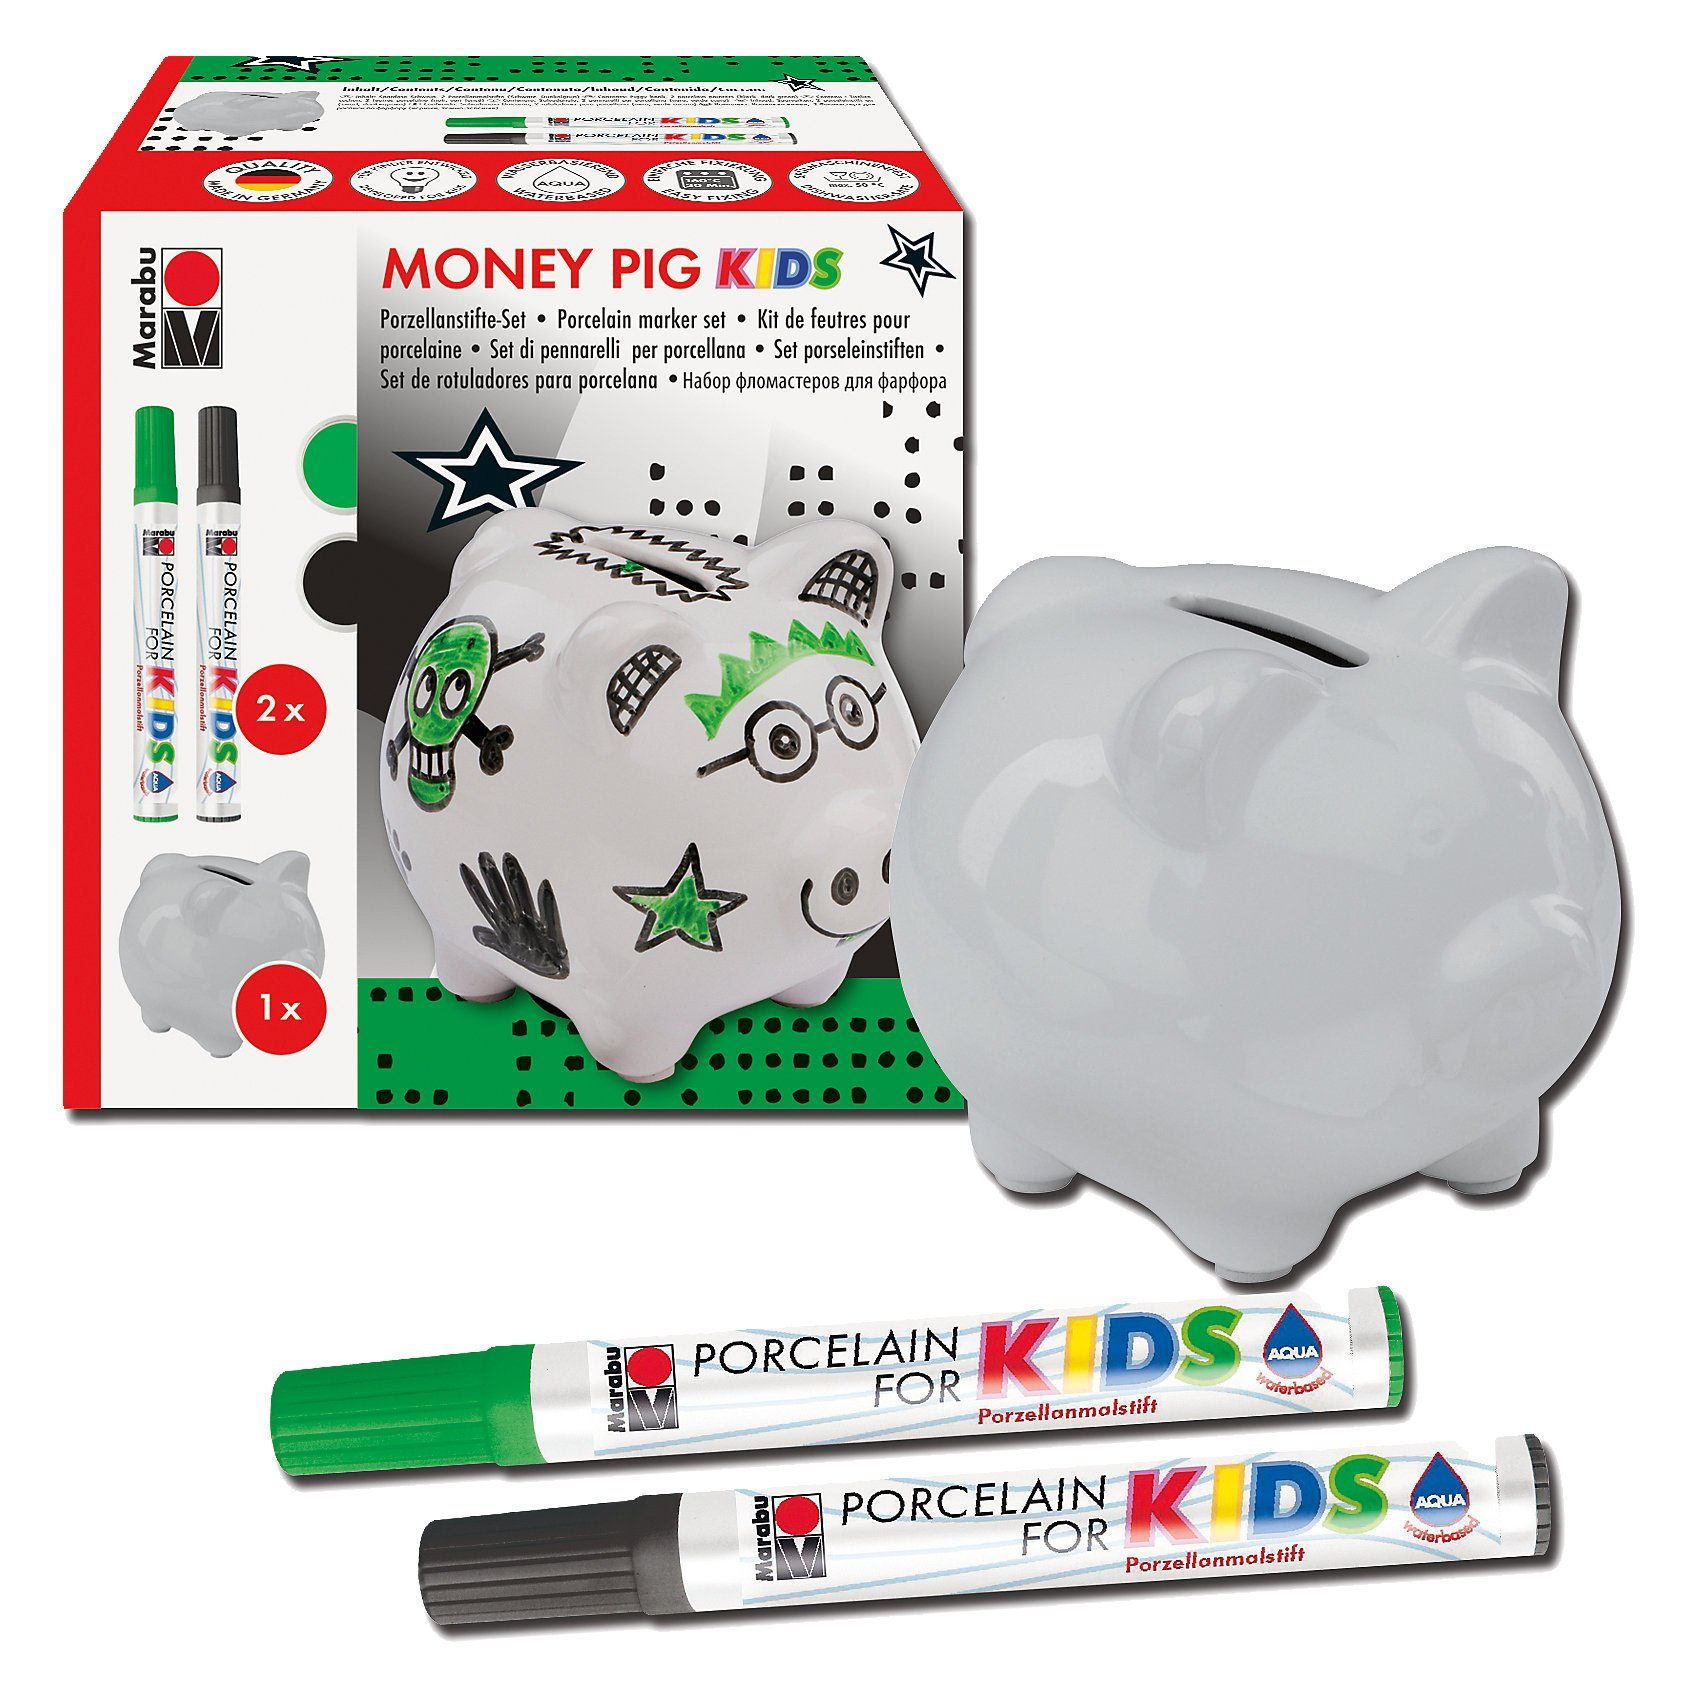 Marabu Porcelain For Kids Set Spardose Money Pig